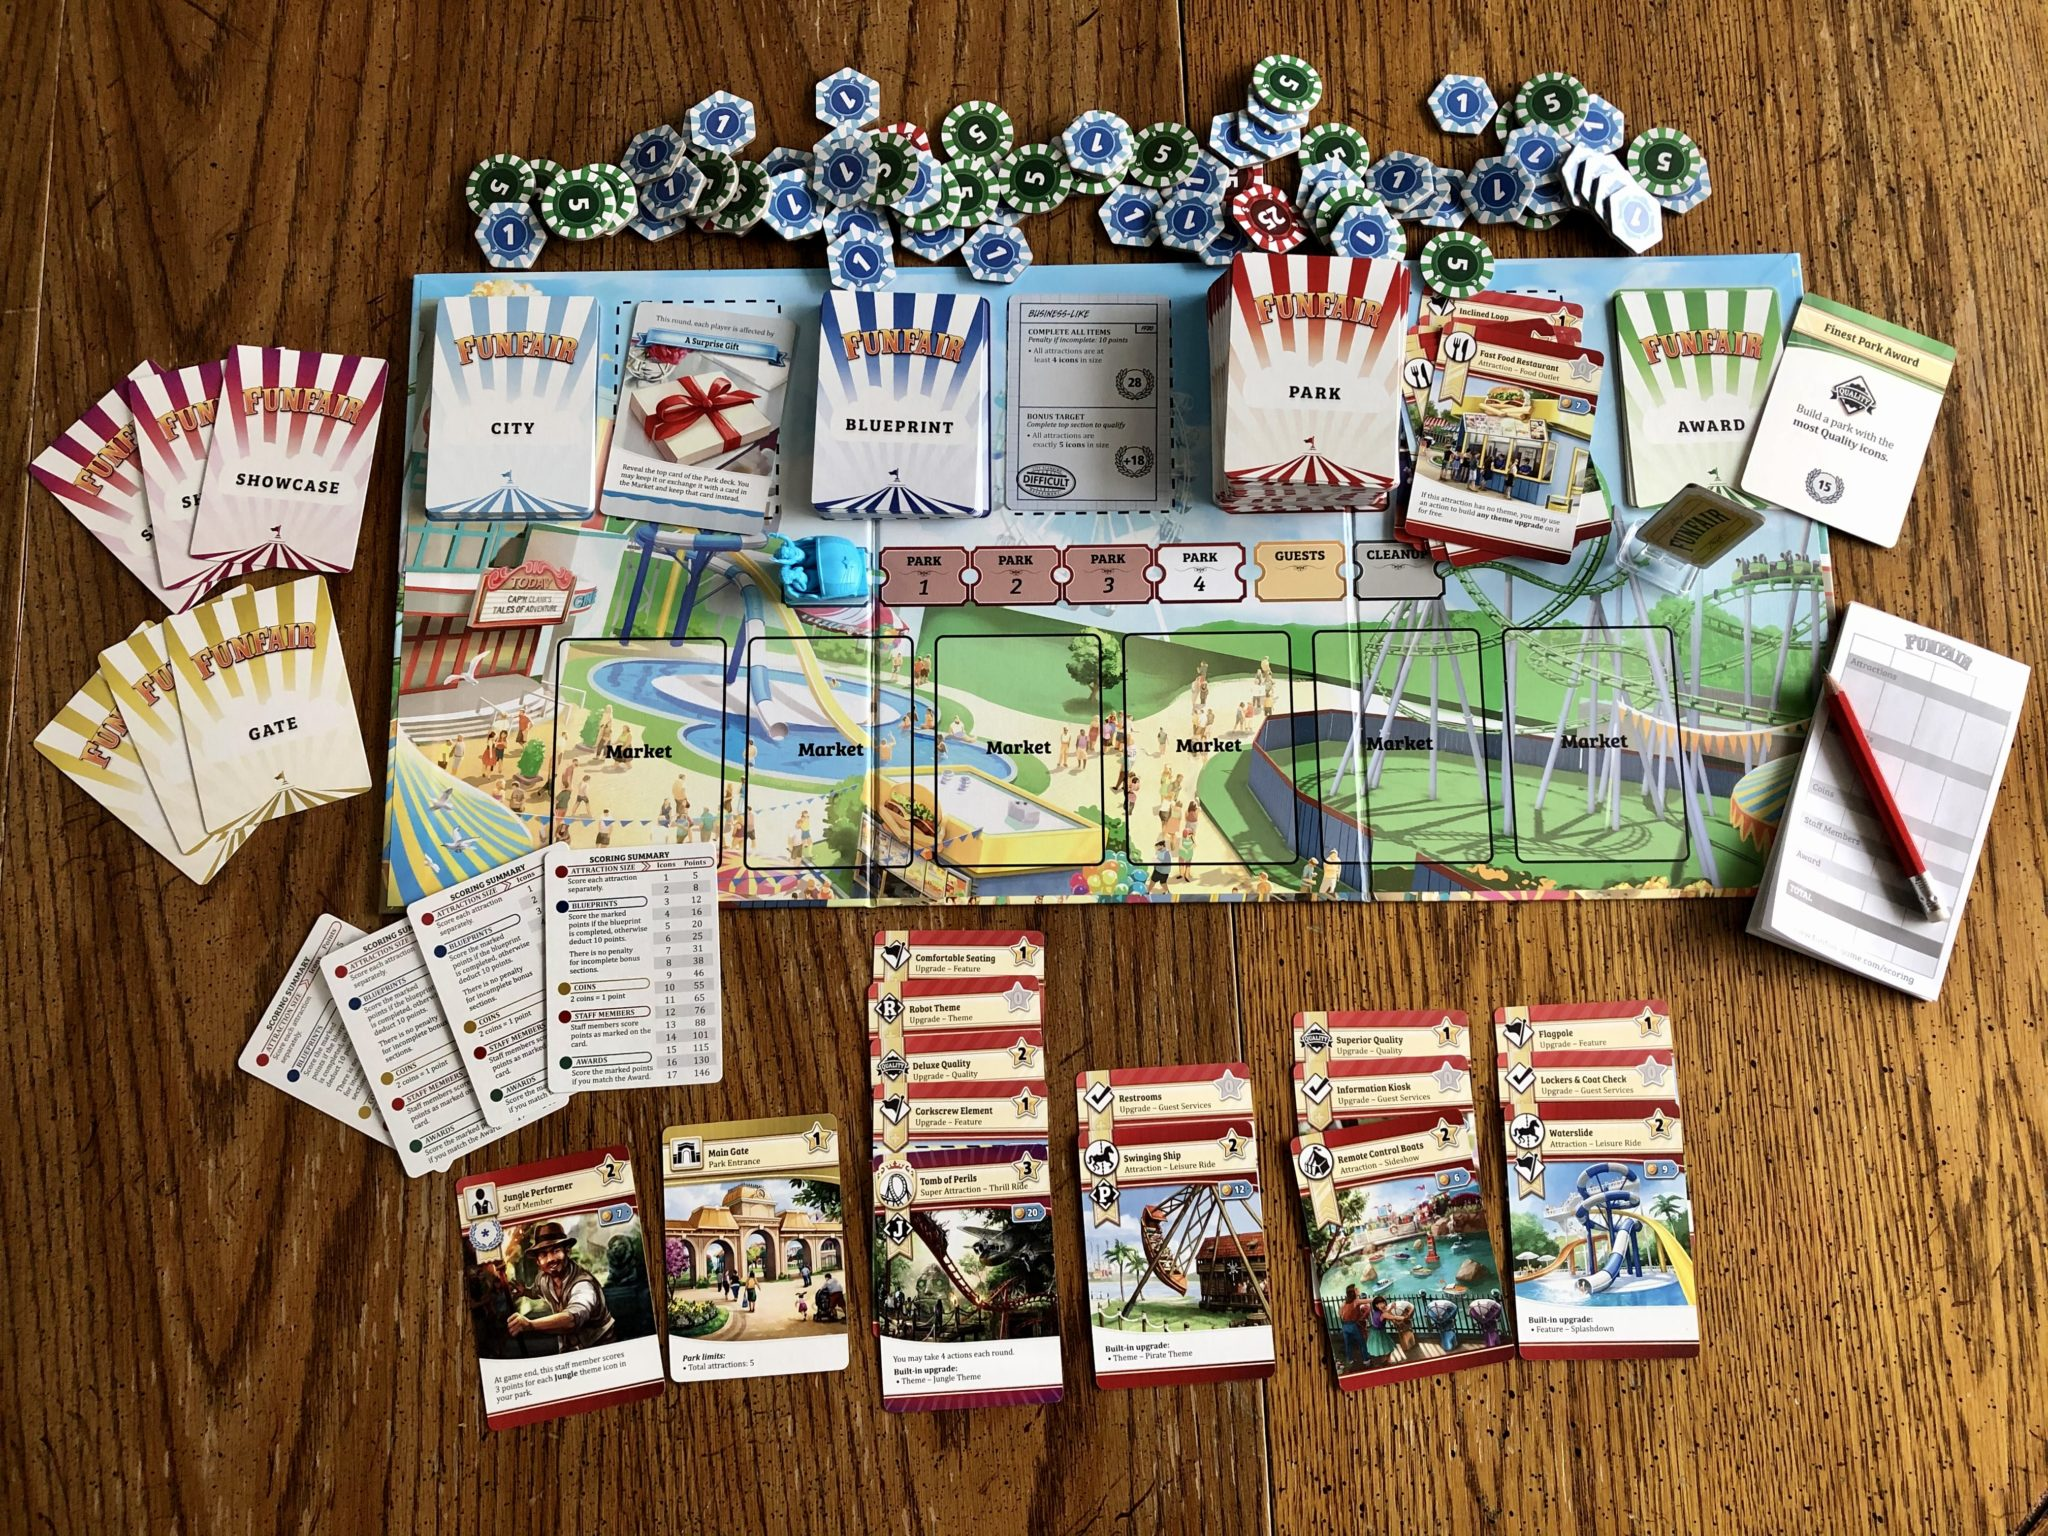 Funfair - Everything included in the game. Components